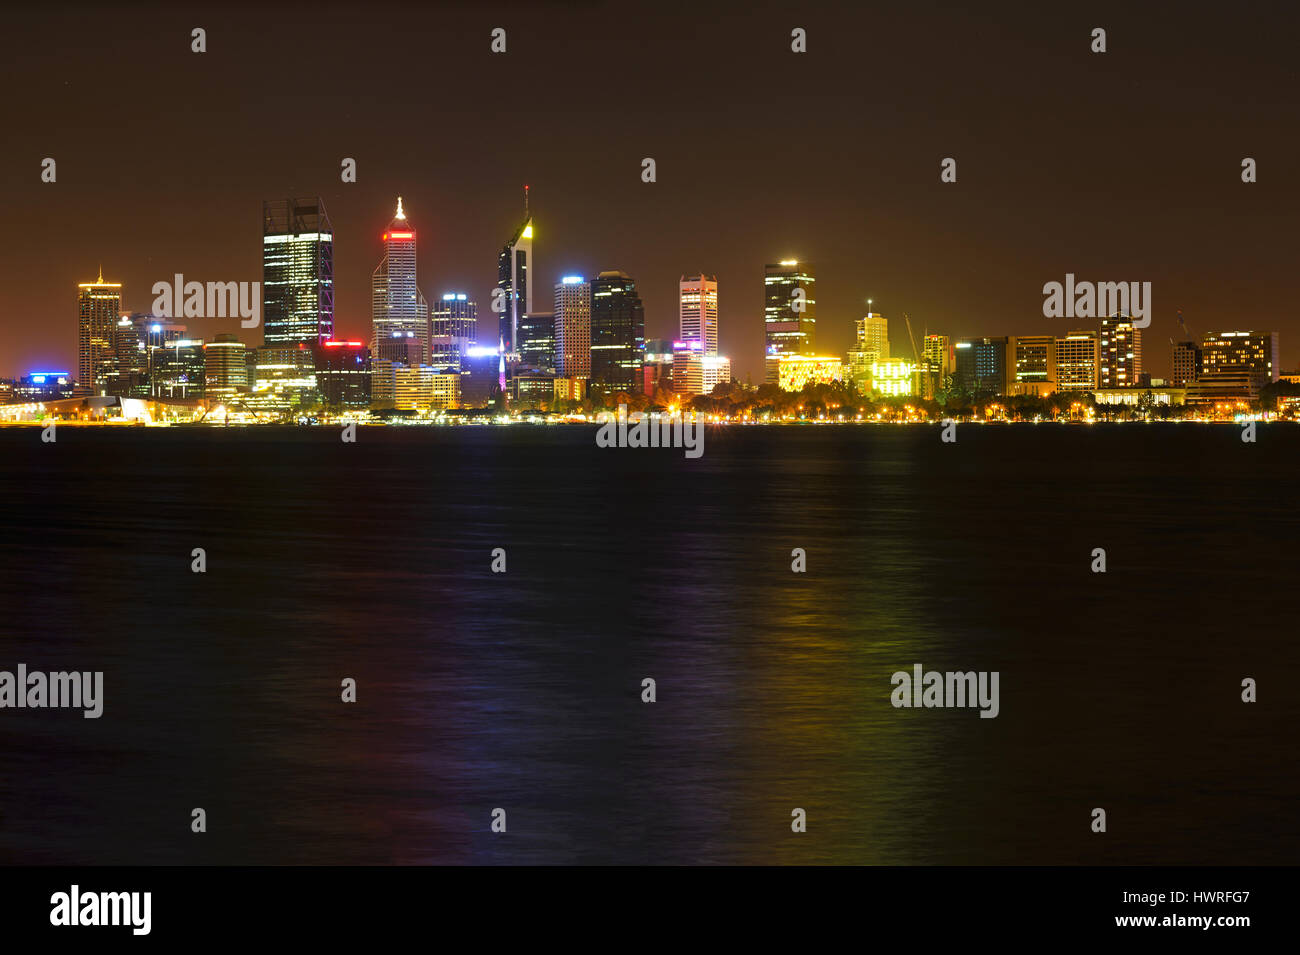 Perth at night, City Skyline, view over the swan river, Perth Australia, Western Australia, Australia, Down under - Stock Image